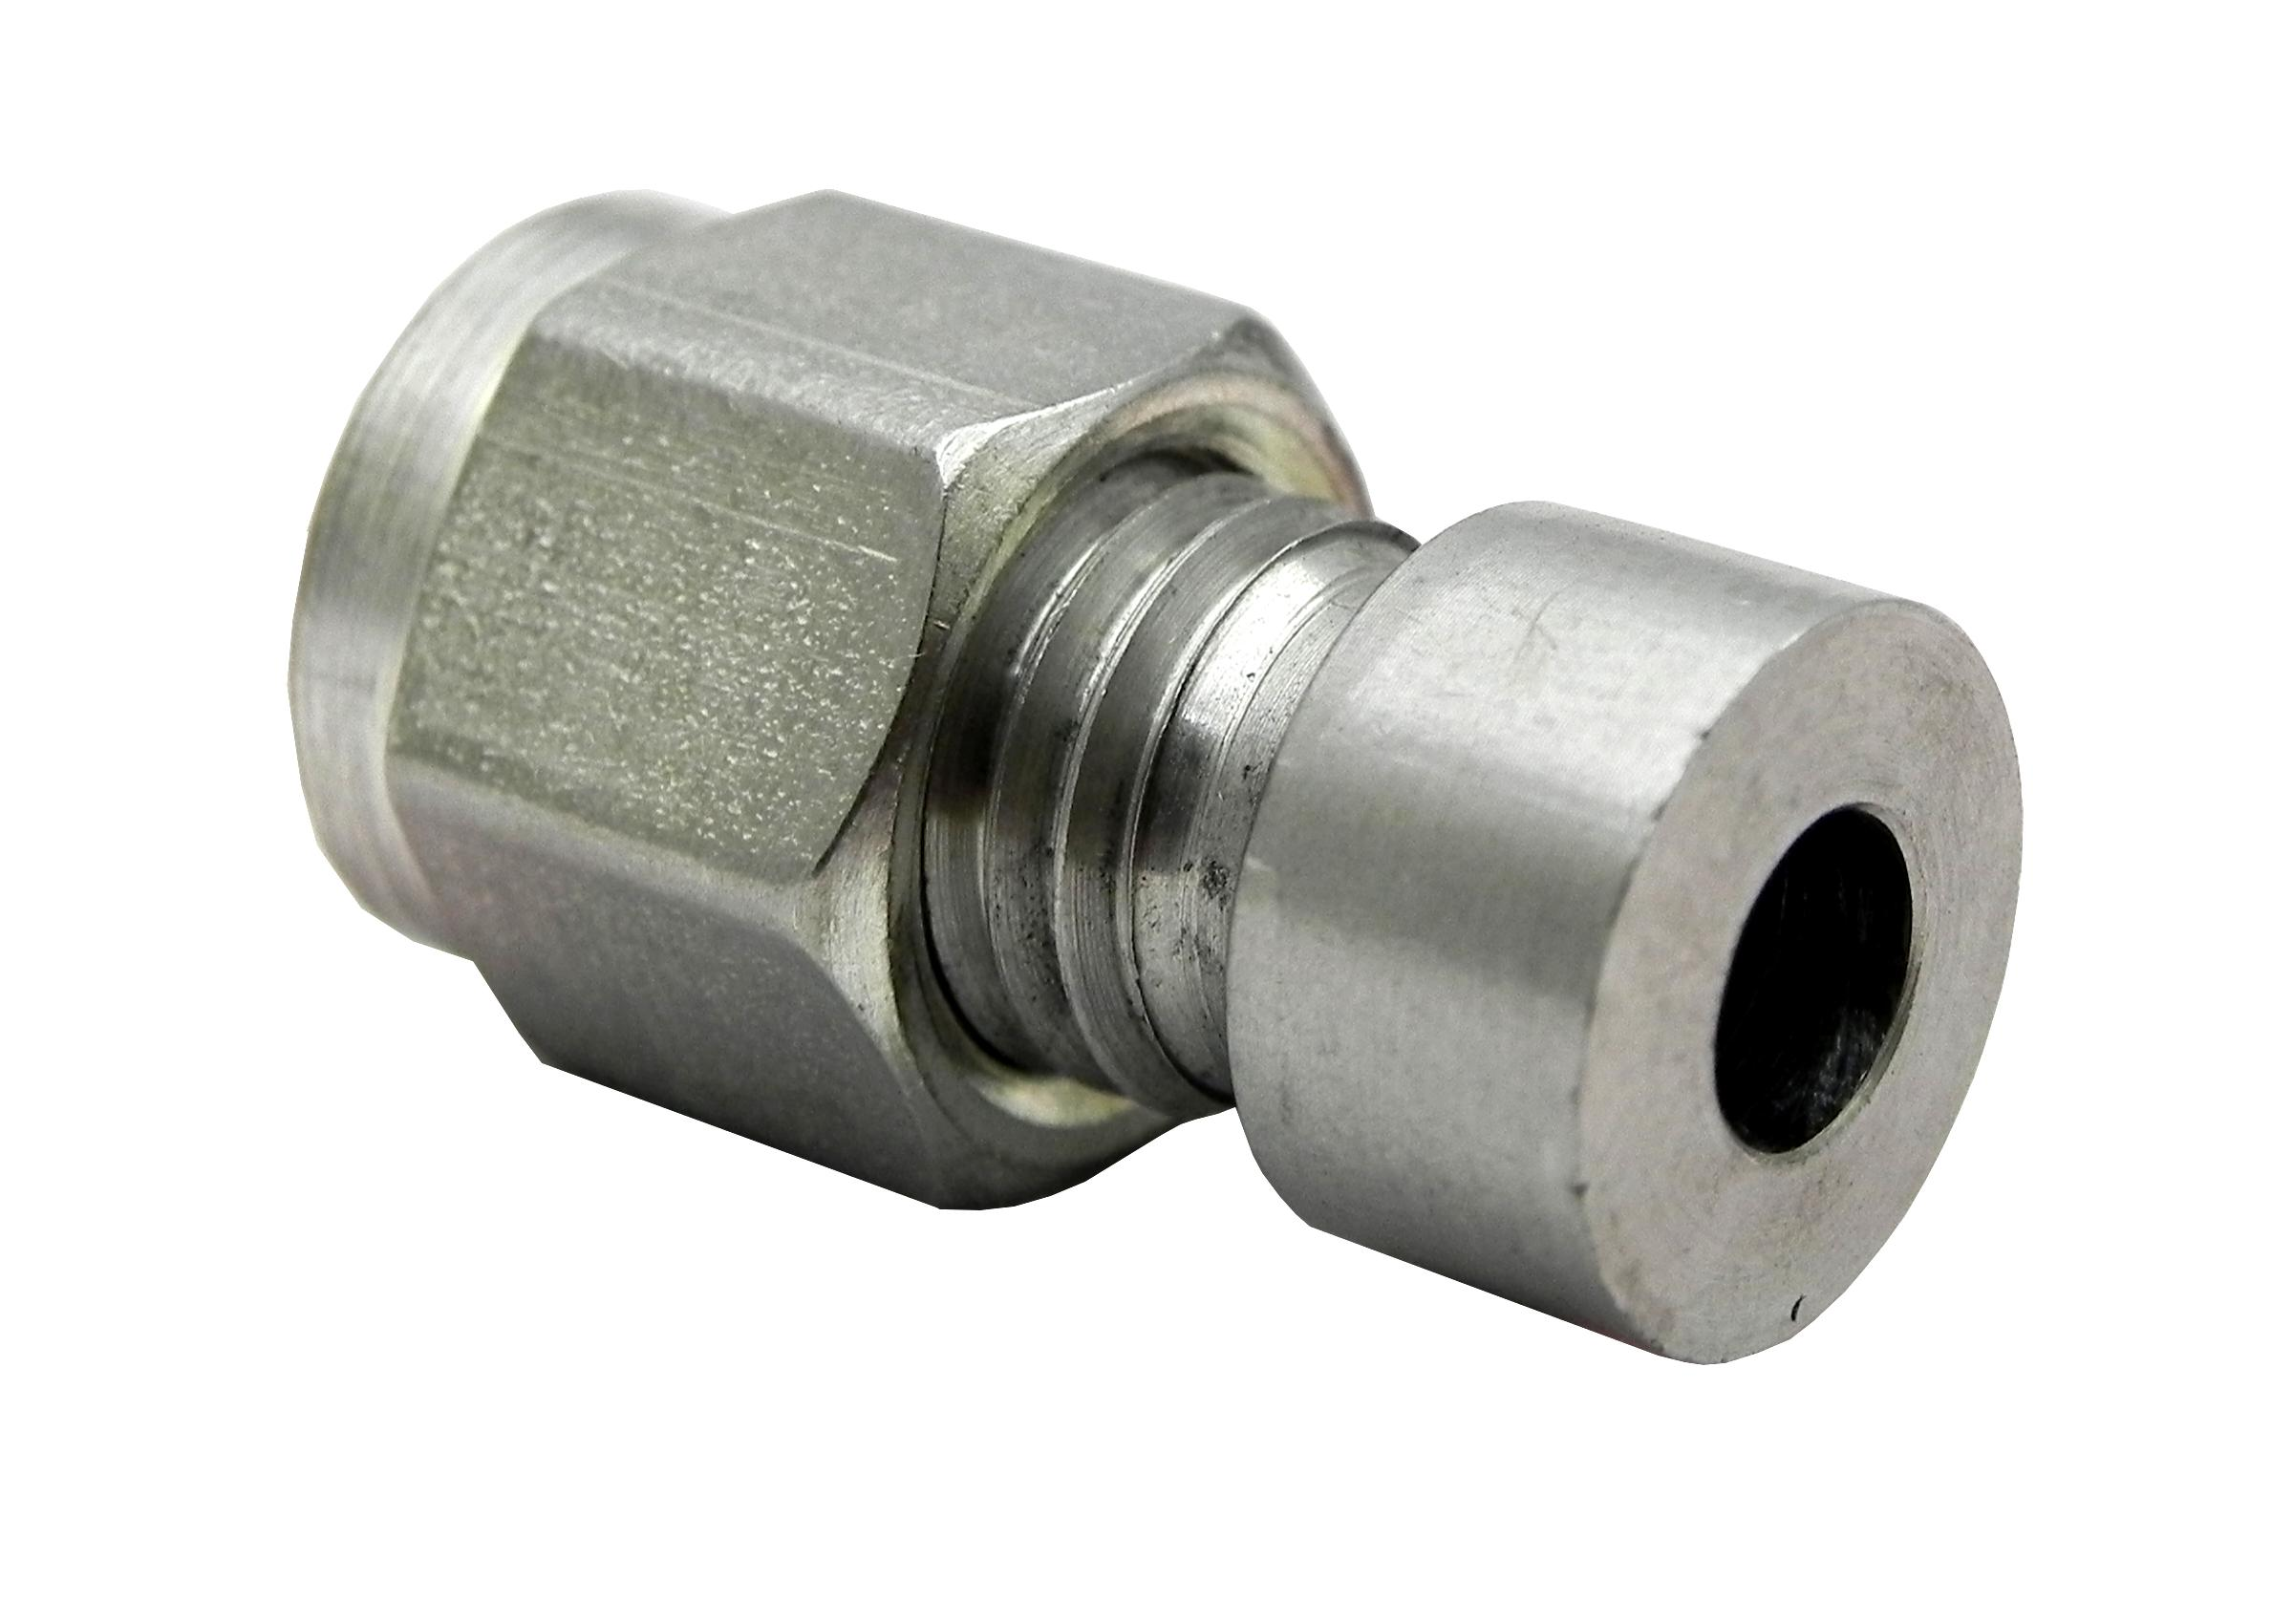 Egt probe compression fittings direct weld